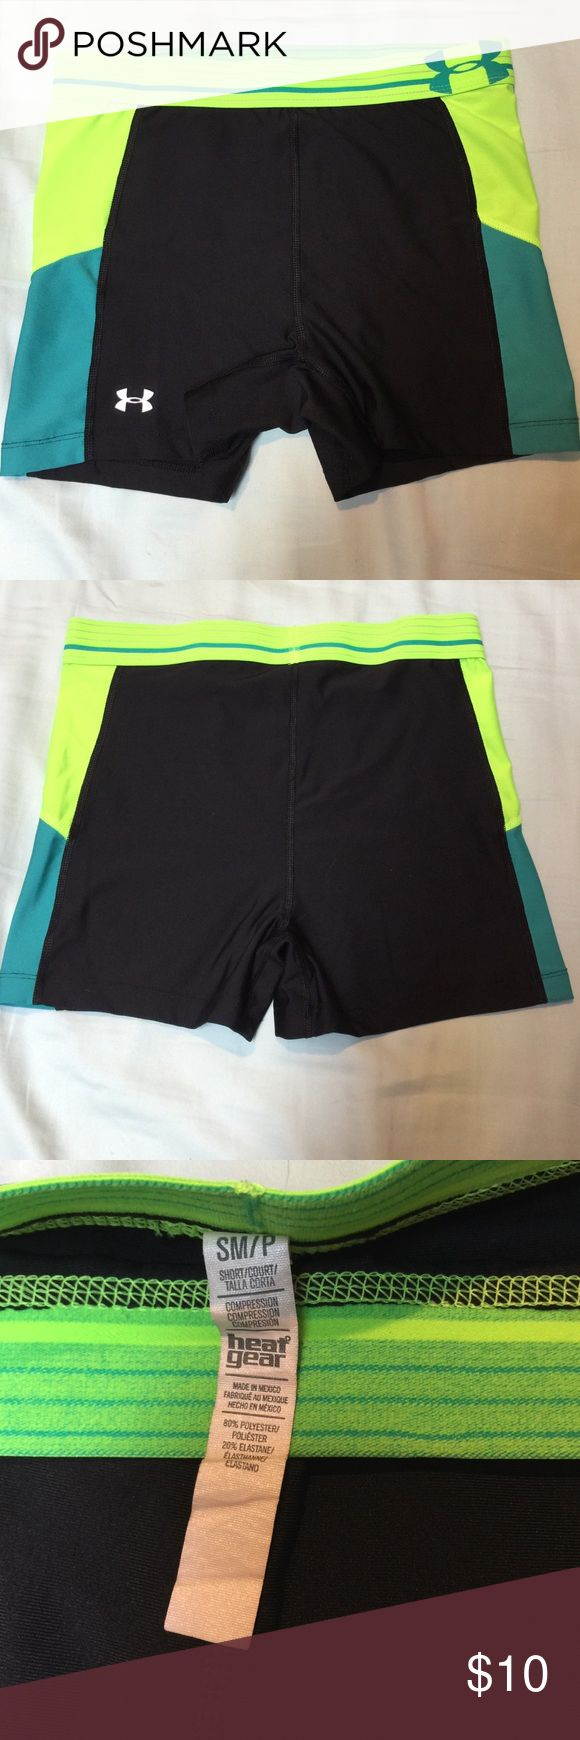 UA compression shorts size small 80% poly and 20% elastane shorts in black neon green and teal blue. Worn but still in good condition Under Armour Shorts